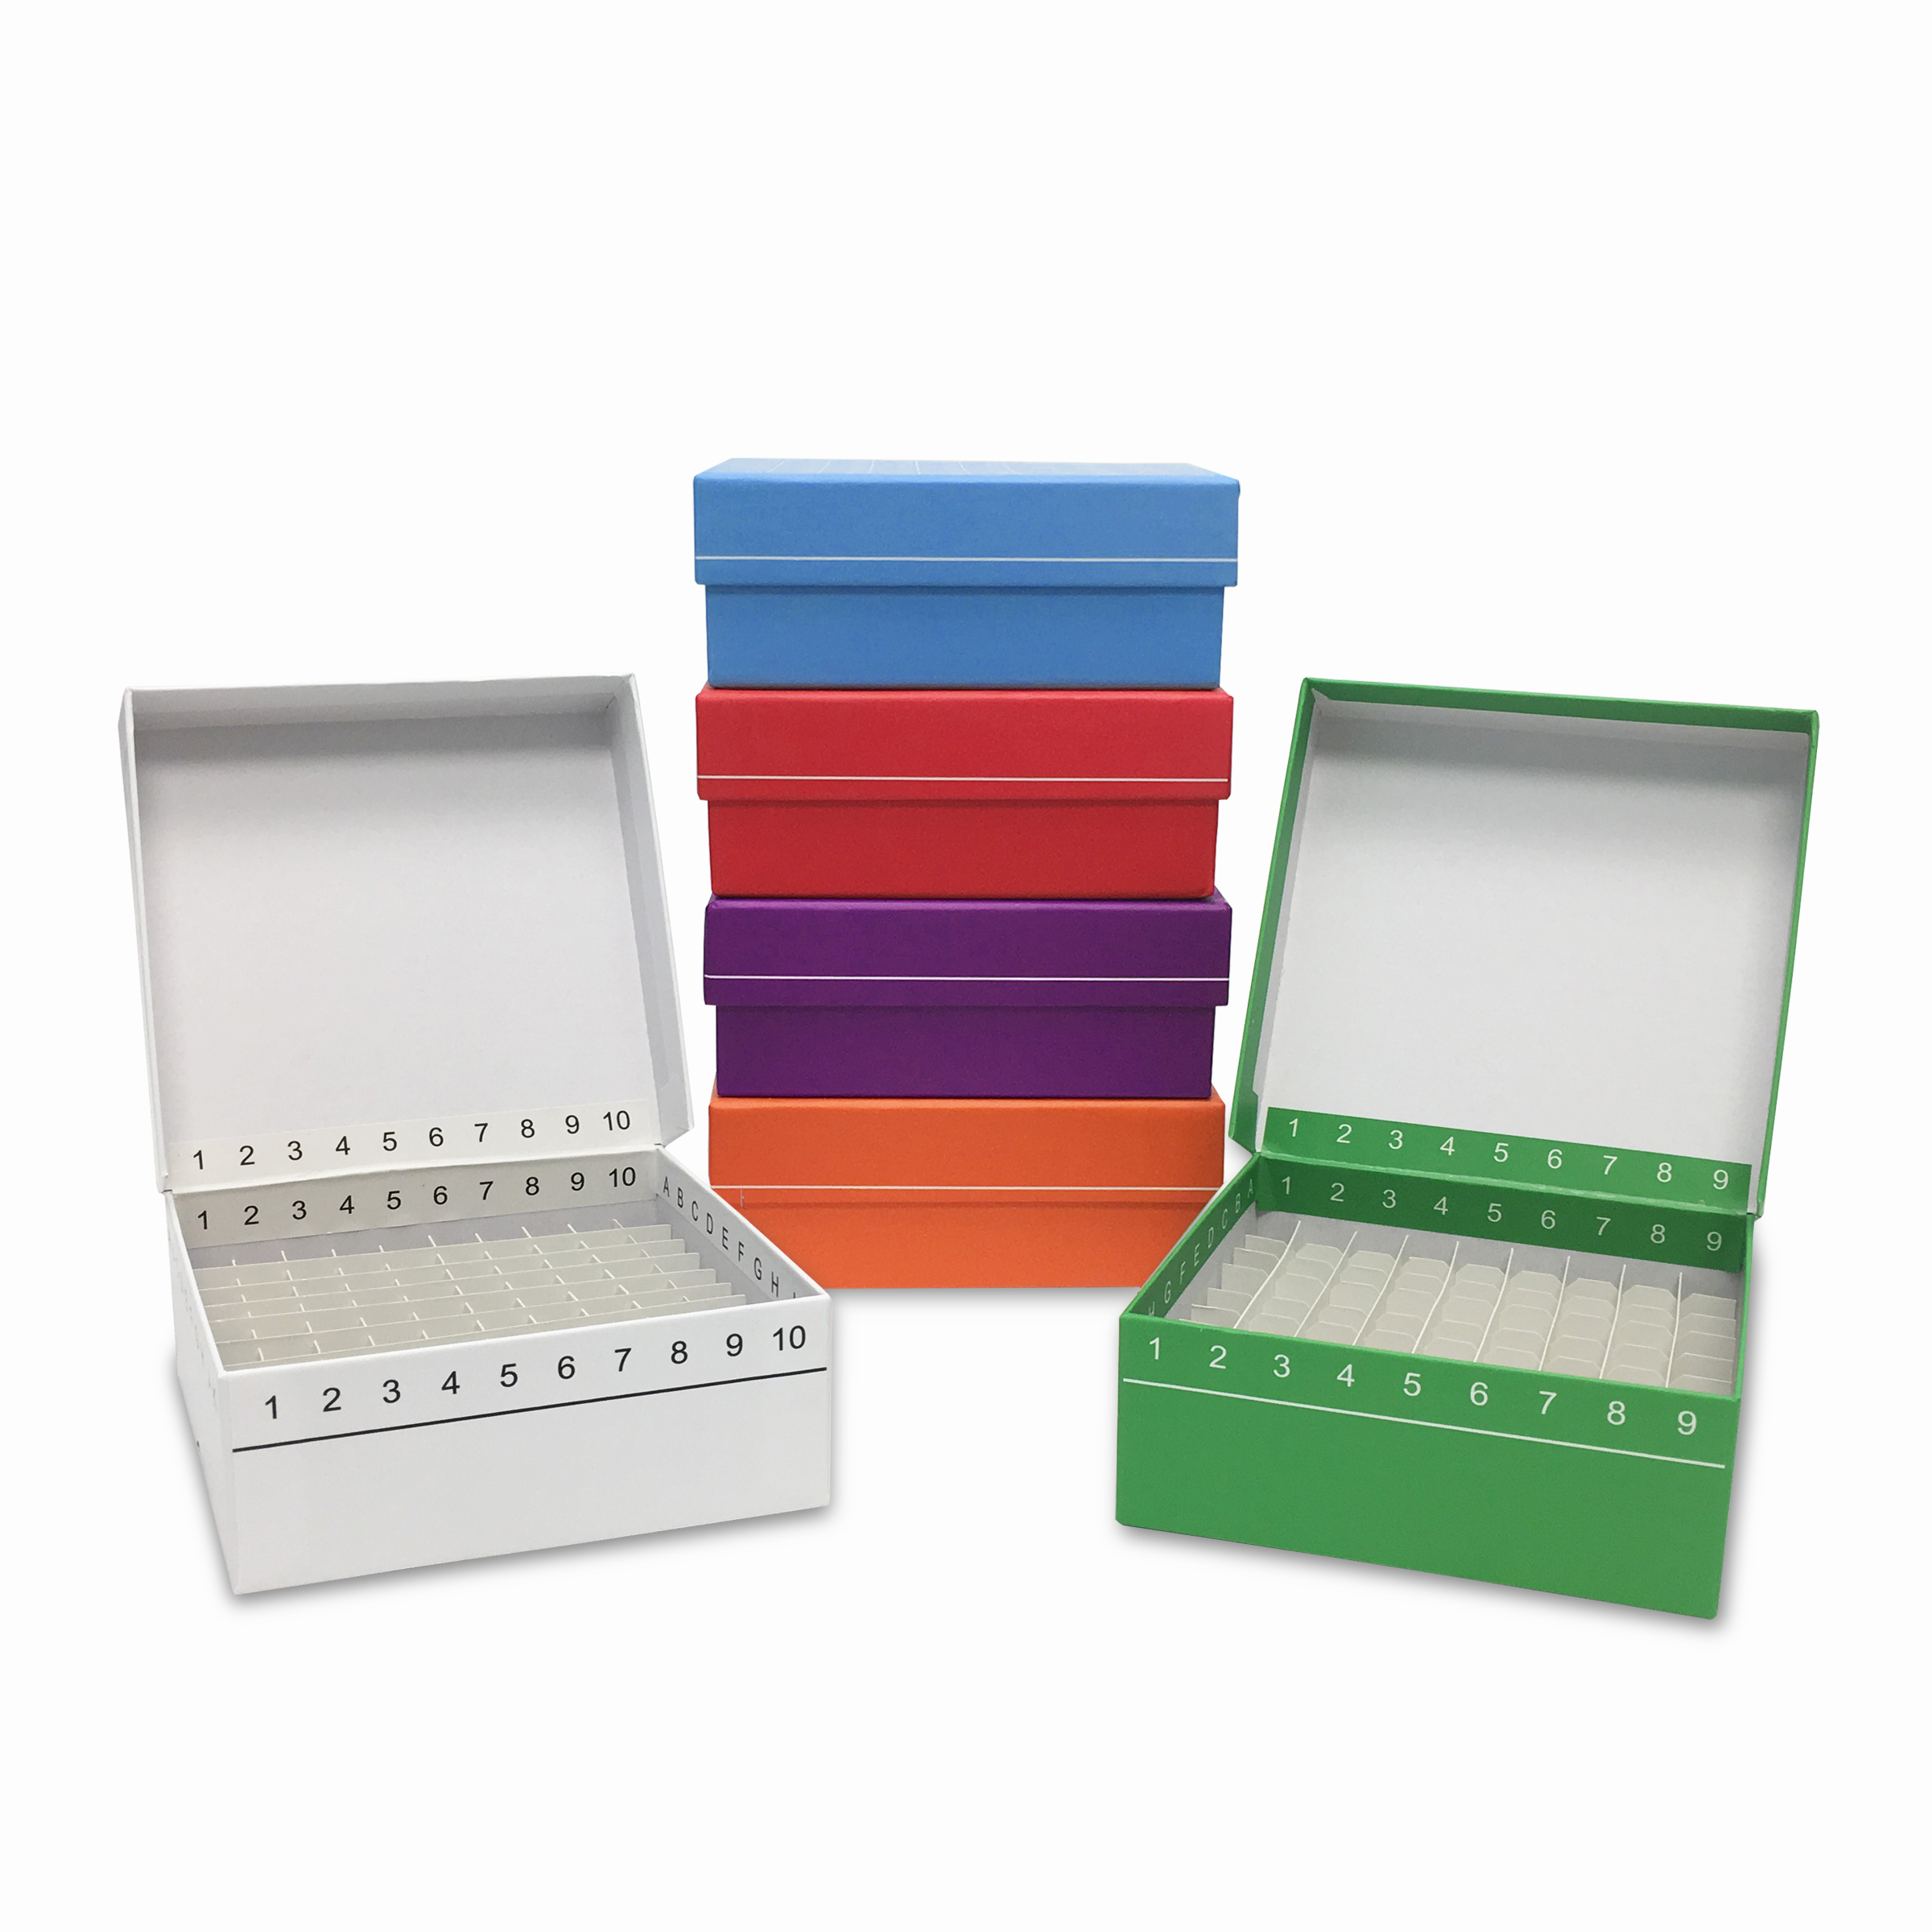 MTC-Bio FlipTop Hinged Cardboard Freezer Boxes